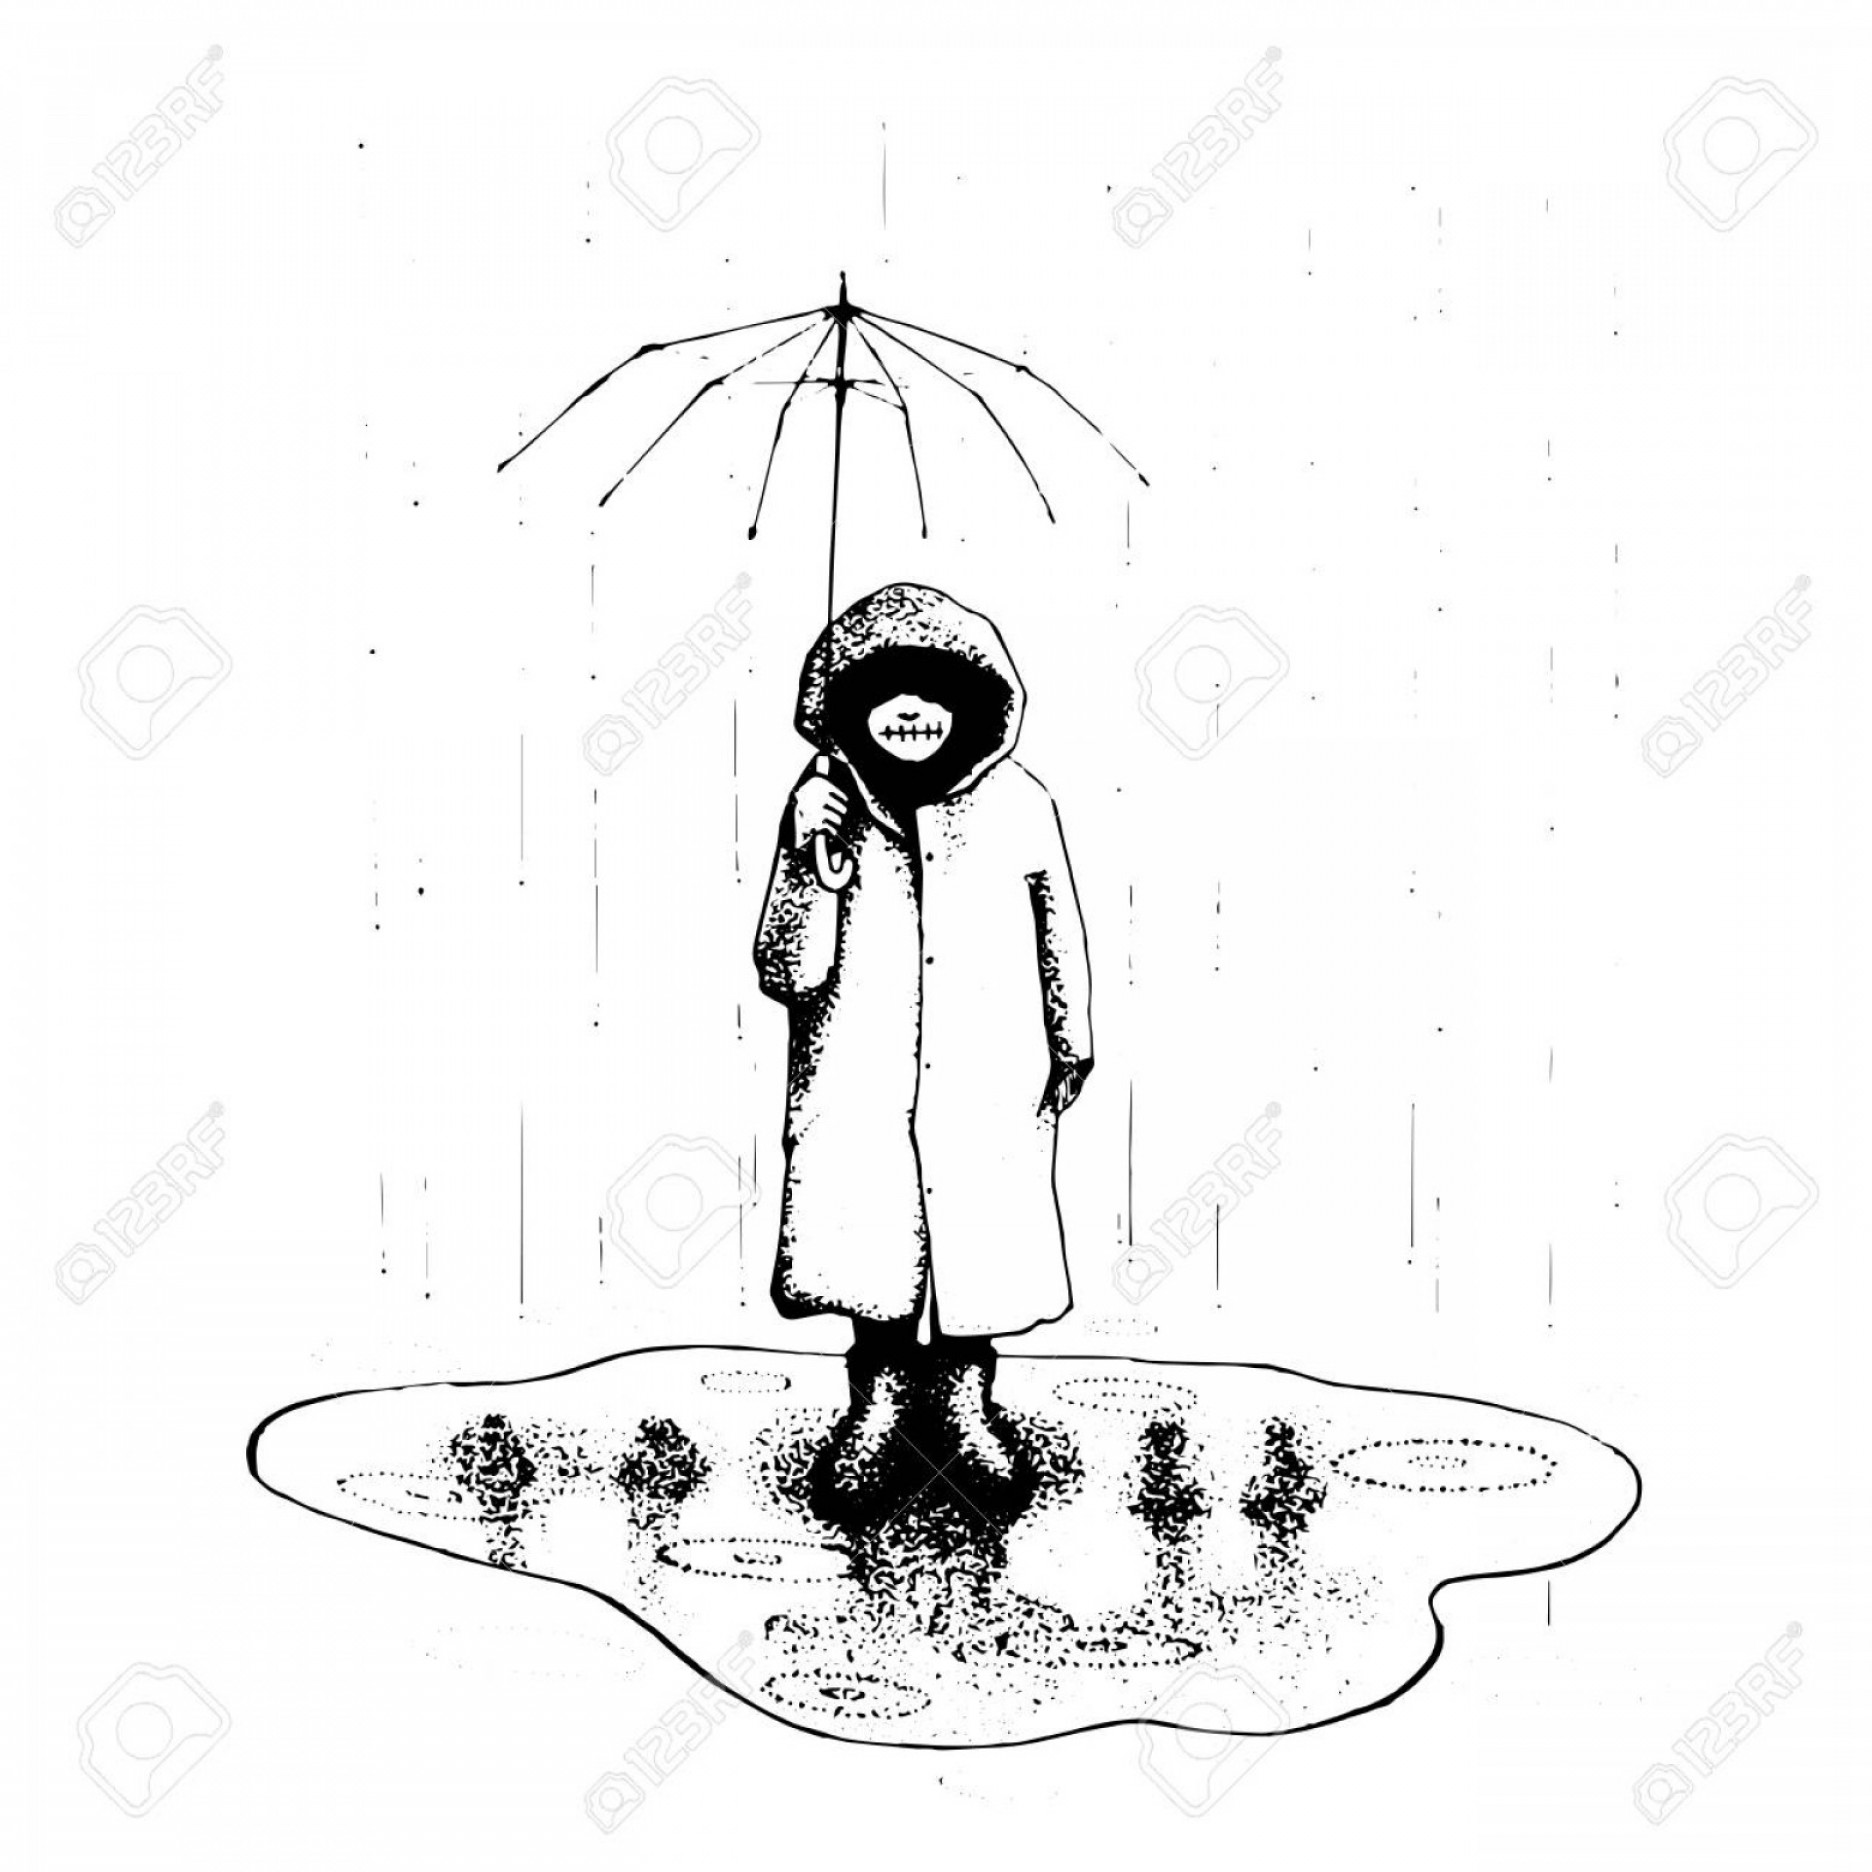 Boy standing alone clipart vlack and white black and white stock Photostock Vector Girl Stand Alone In The Rain With Umbrella Vector ... black and white stock